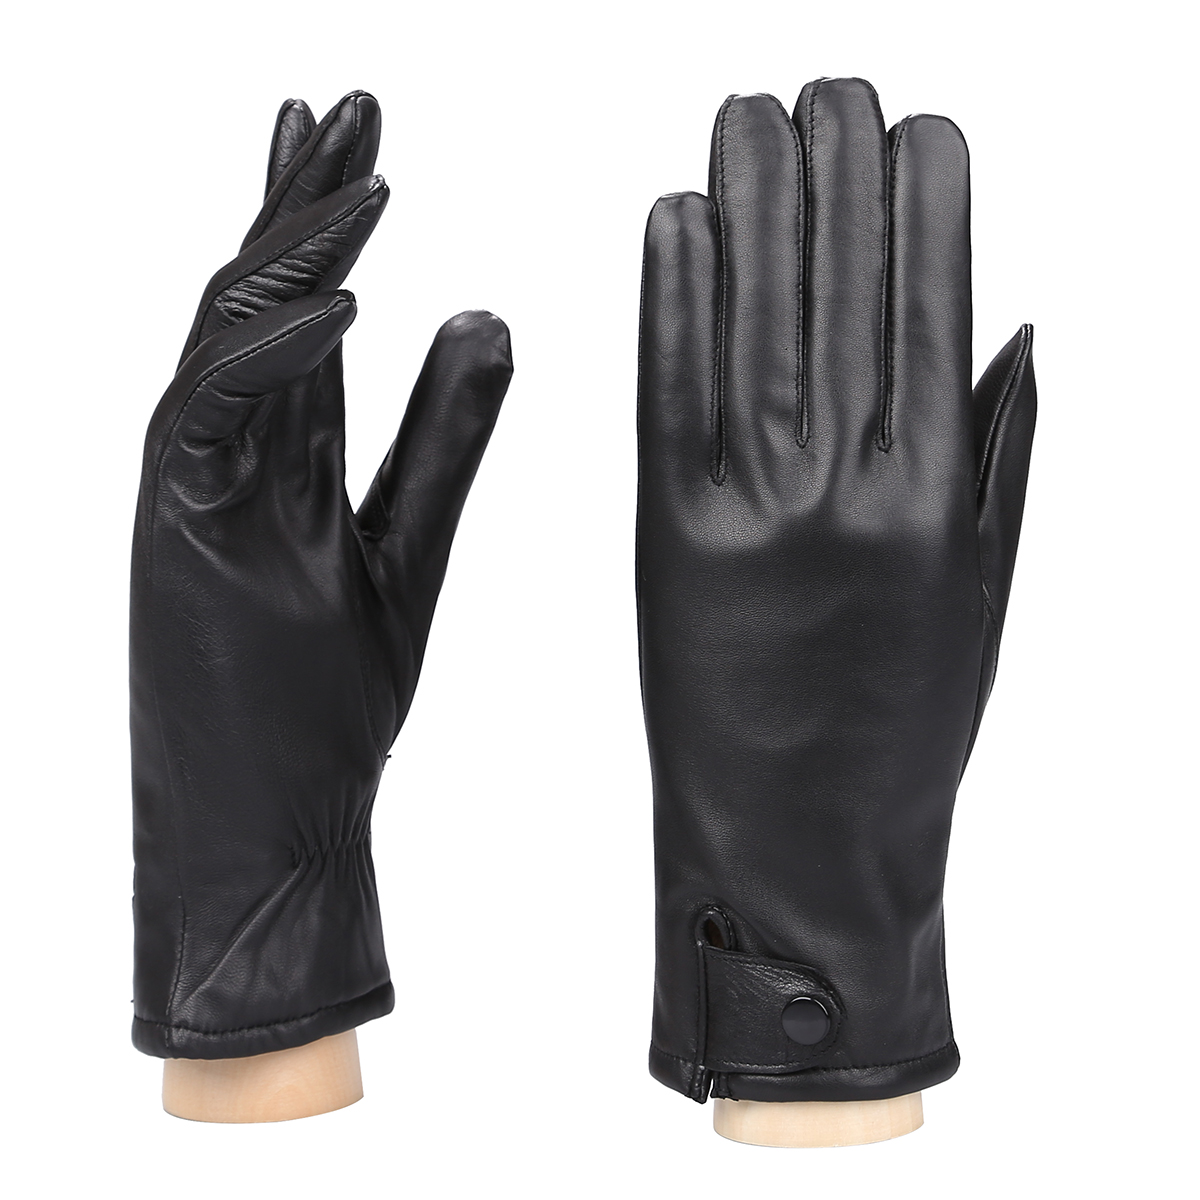 MoDA Women's Ms. Philadelphia Genuine Leather Fully Lined Winter Gloves C0144 Black L